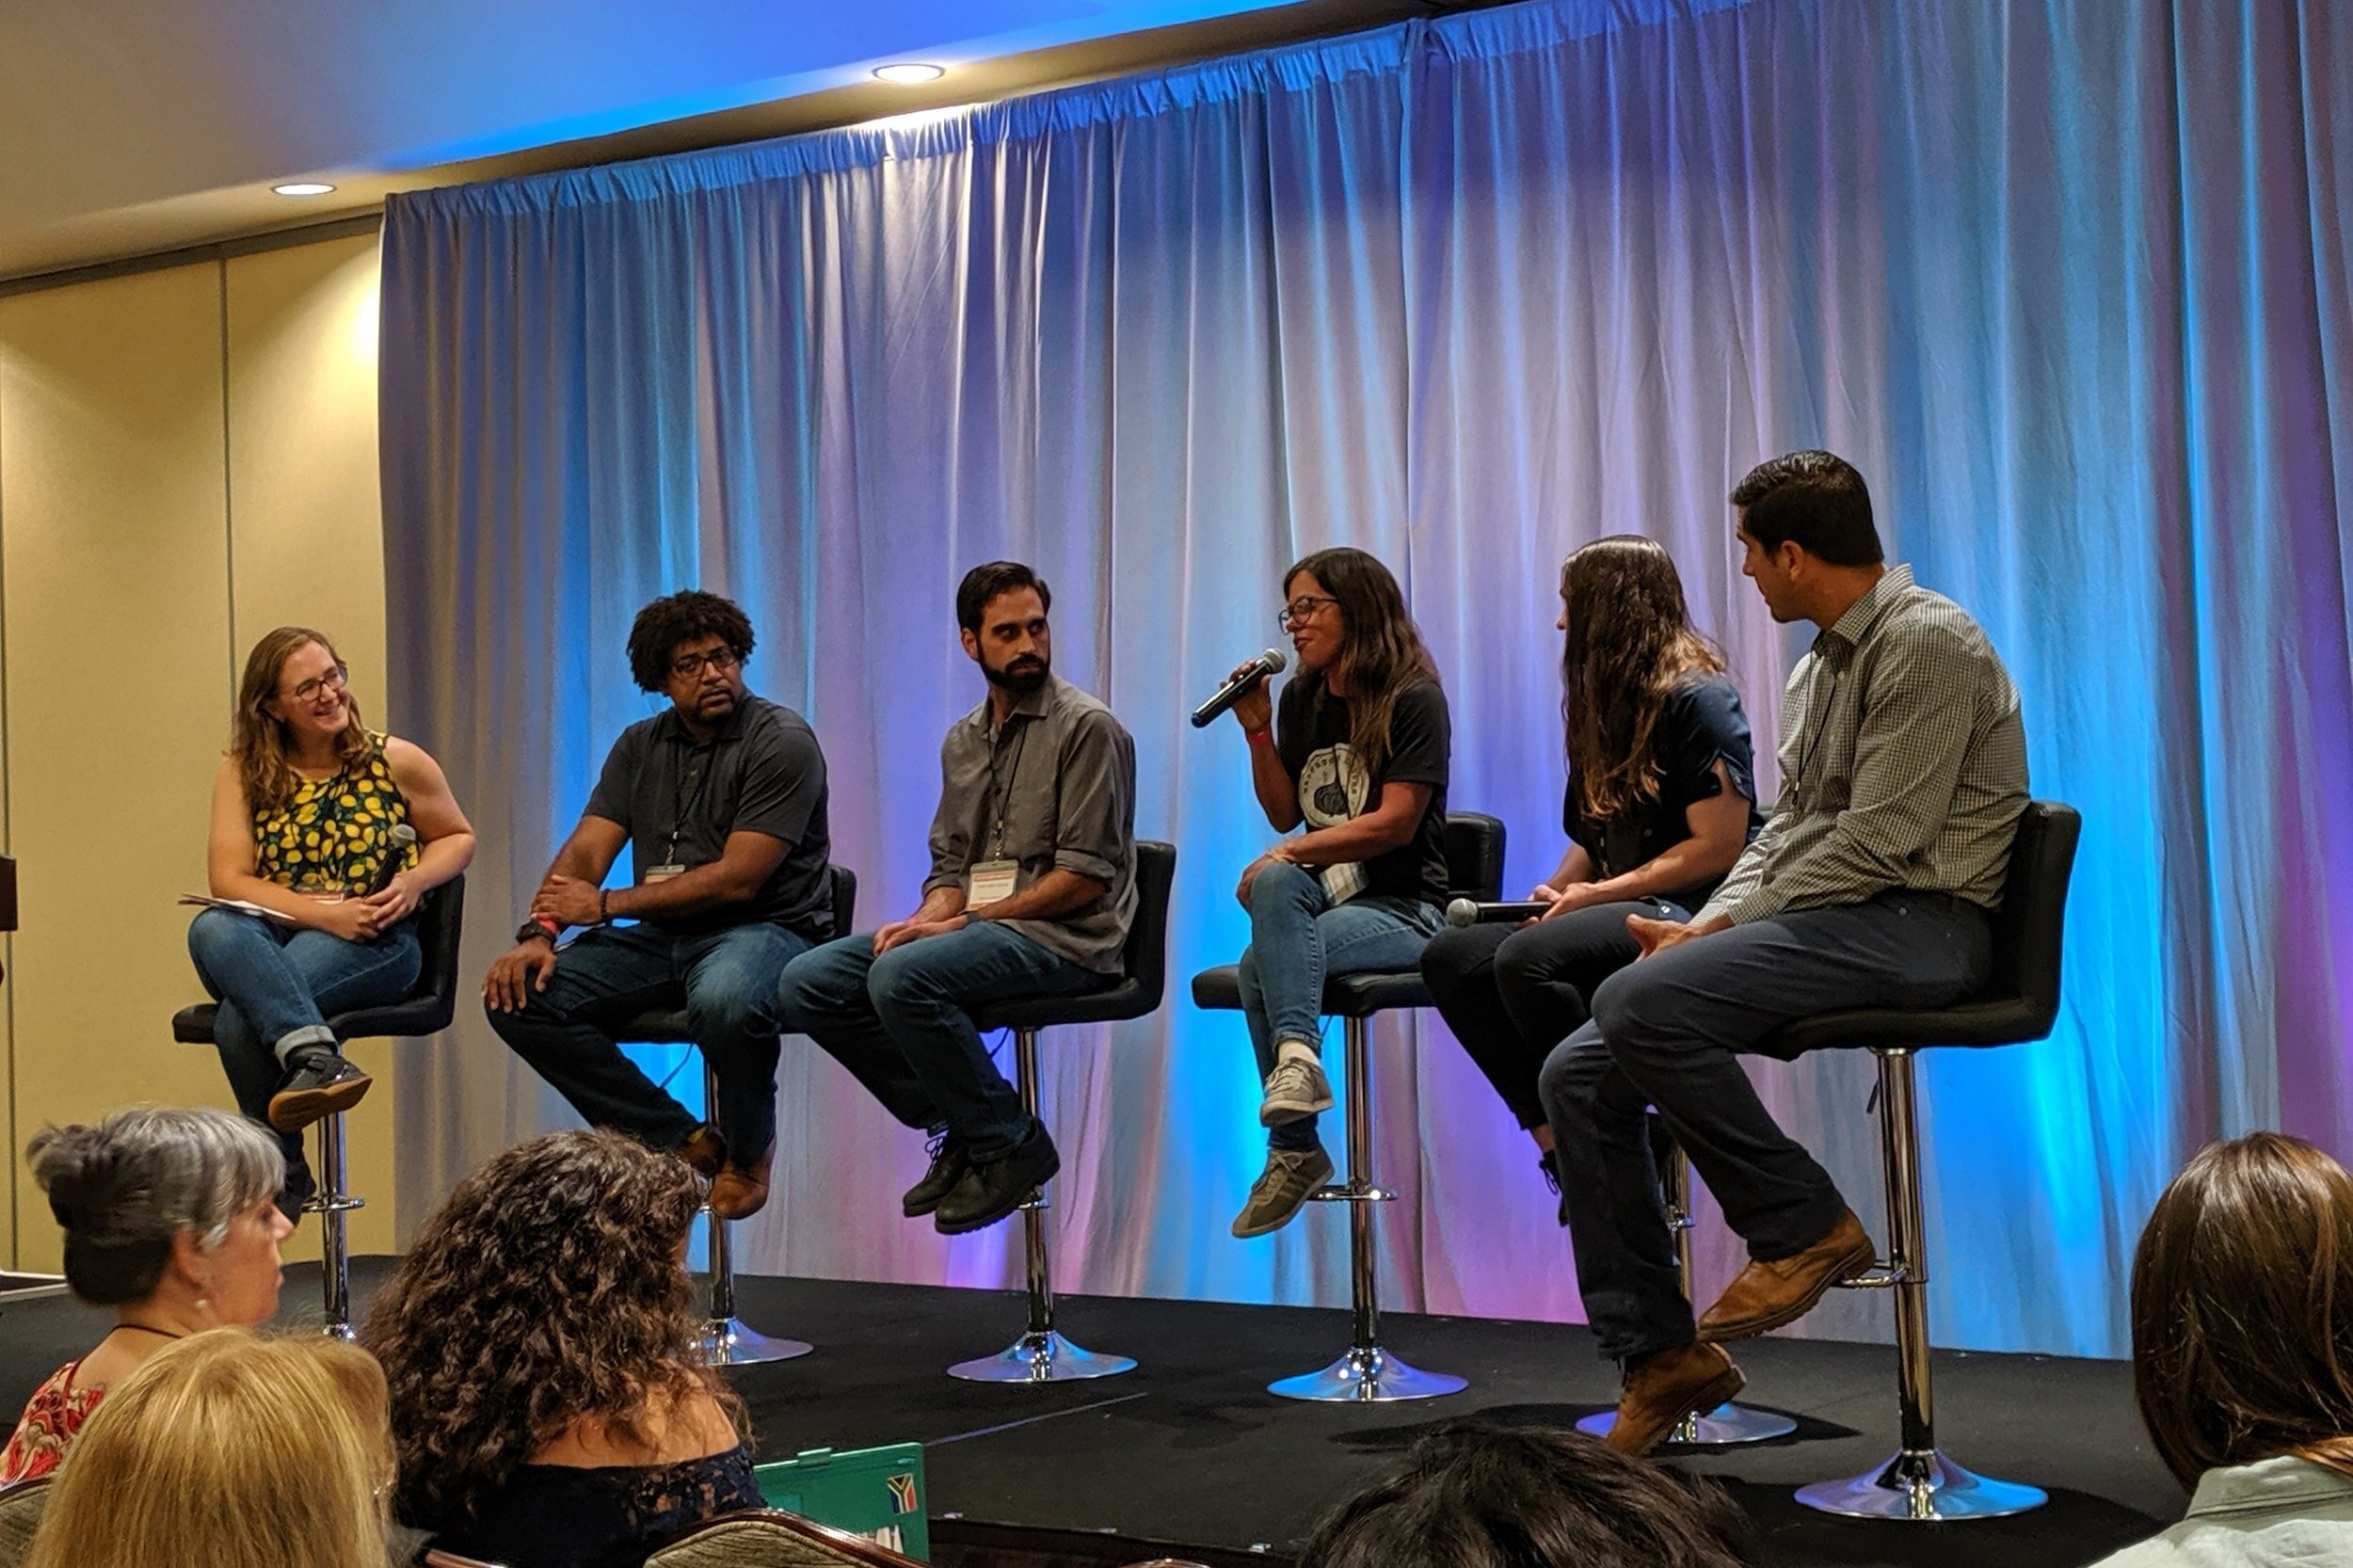 From left to right: Kate Radosevic of Local First Arizona Foundation, Stephen Jones of the larder + the delta, John Panza of BiGA by SENSES, Shanti Rade of Whipstone Farm, Tamara Stanger of Cotton & Copper, and Todd Hanley of Hotel Congress and Maynards Market & Kitchen.